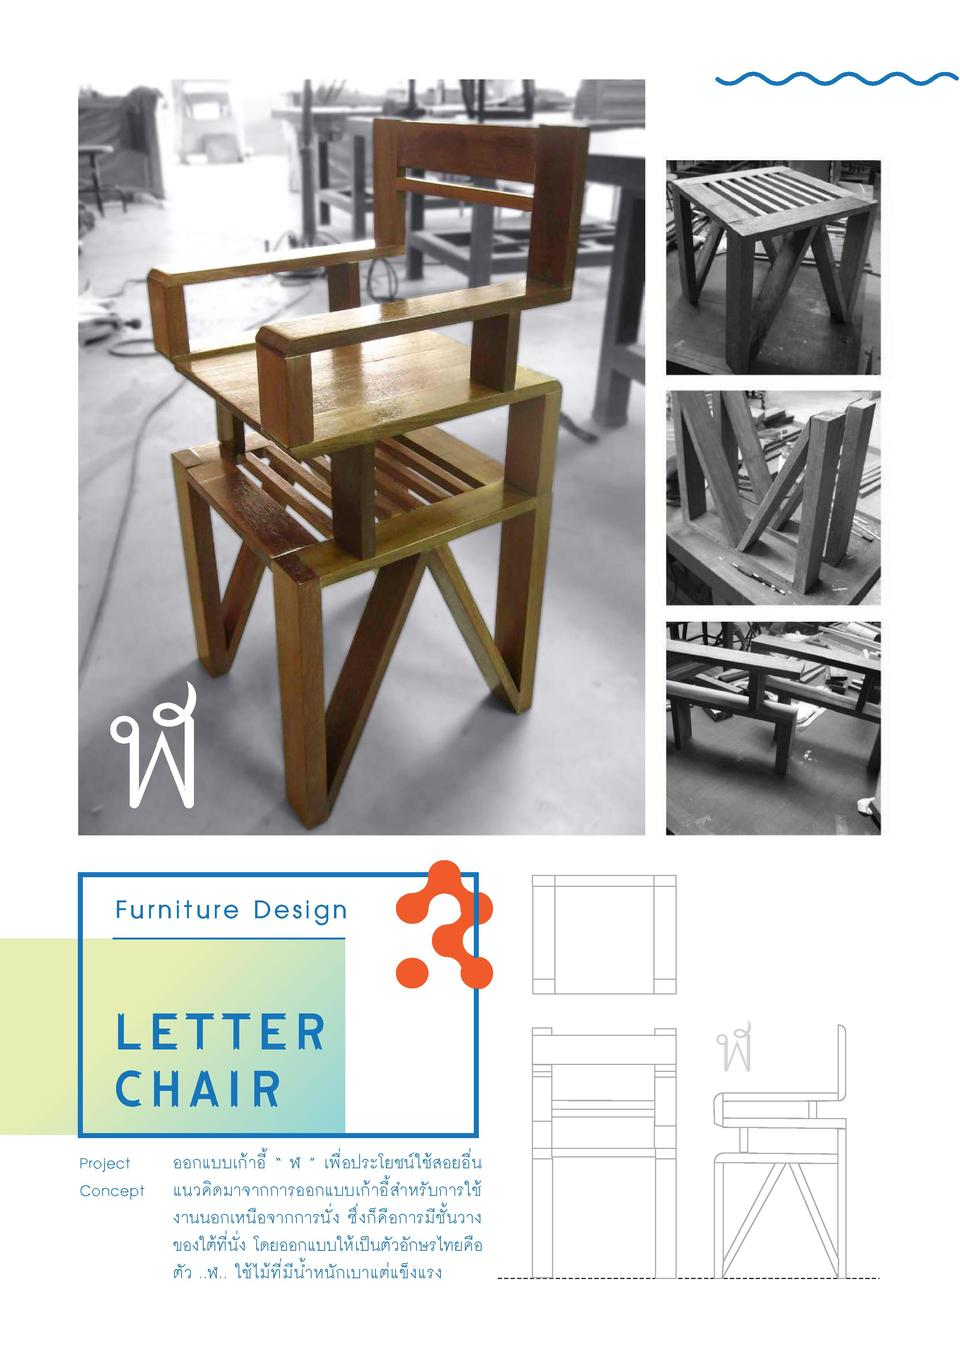 Furniture Design  Letter chair Project Concept                                                                        ...